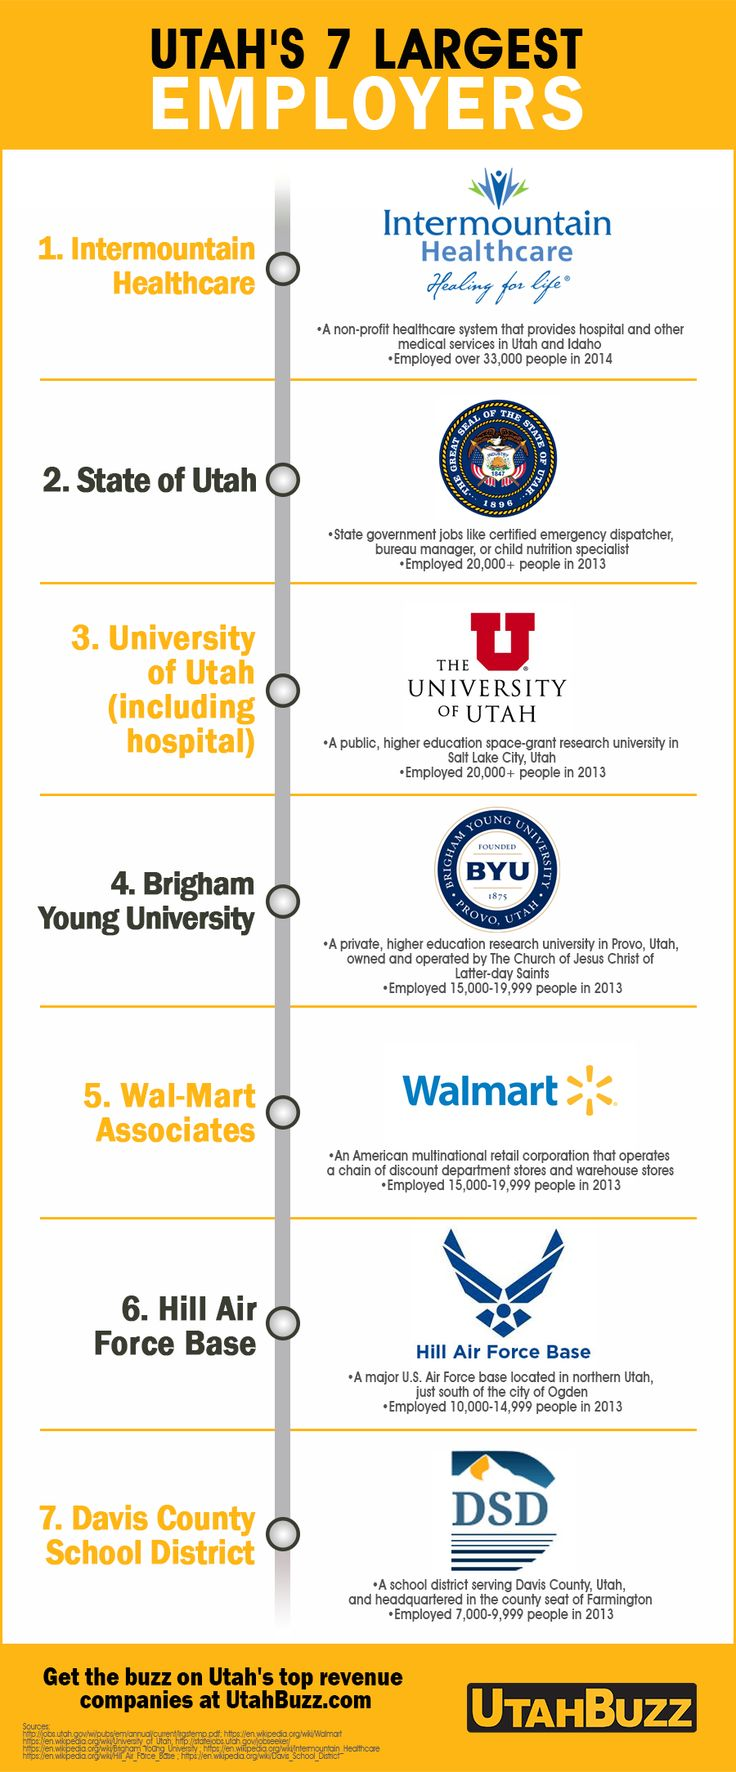 Check the list of Utah's largest employers in this